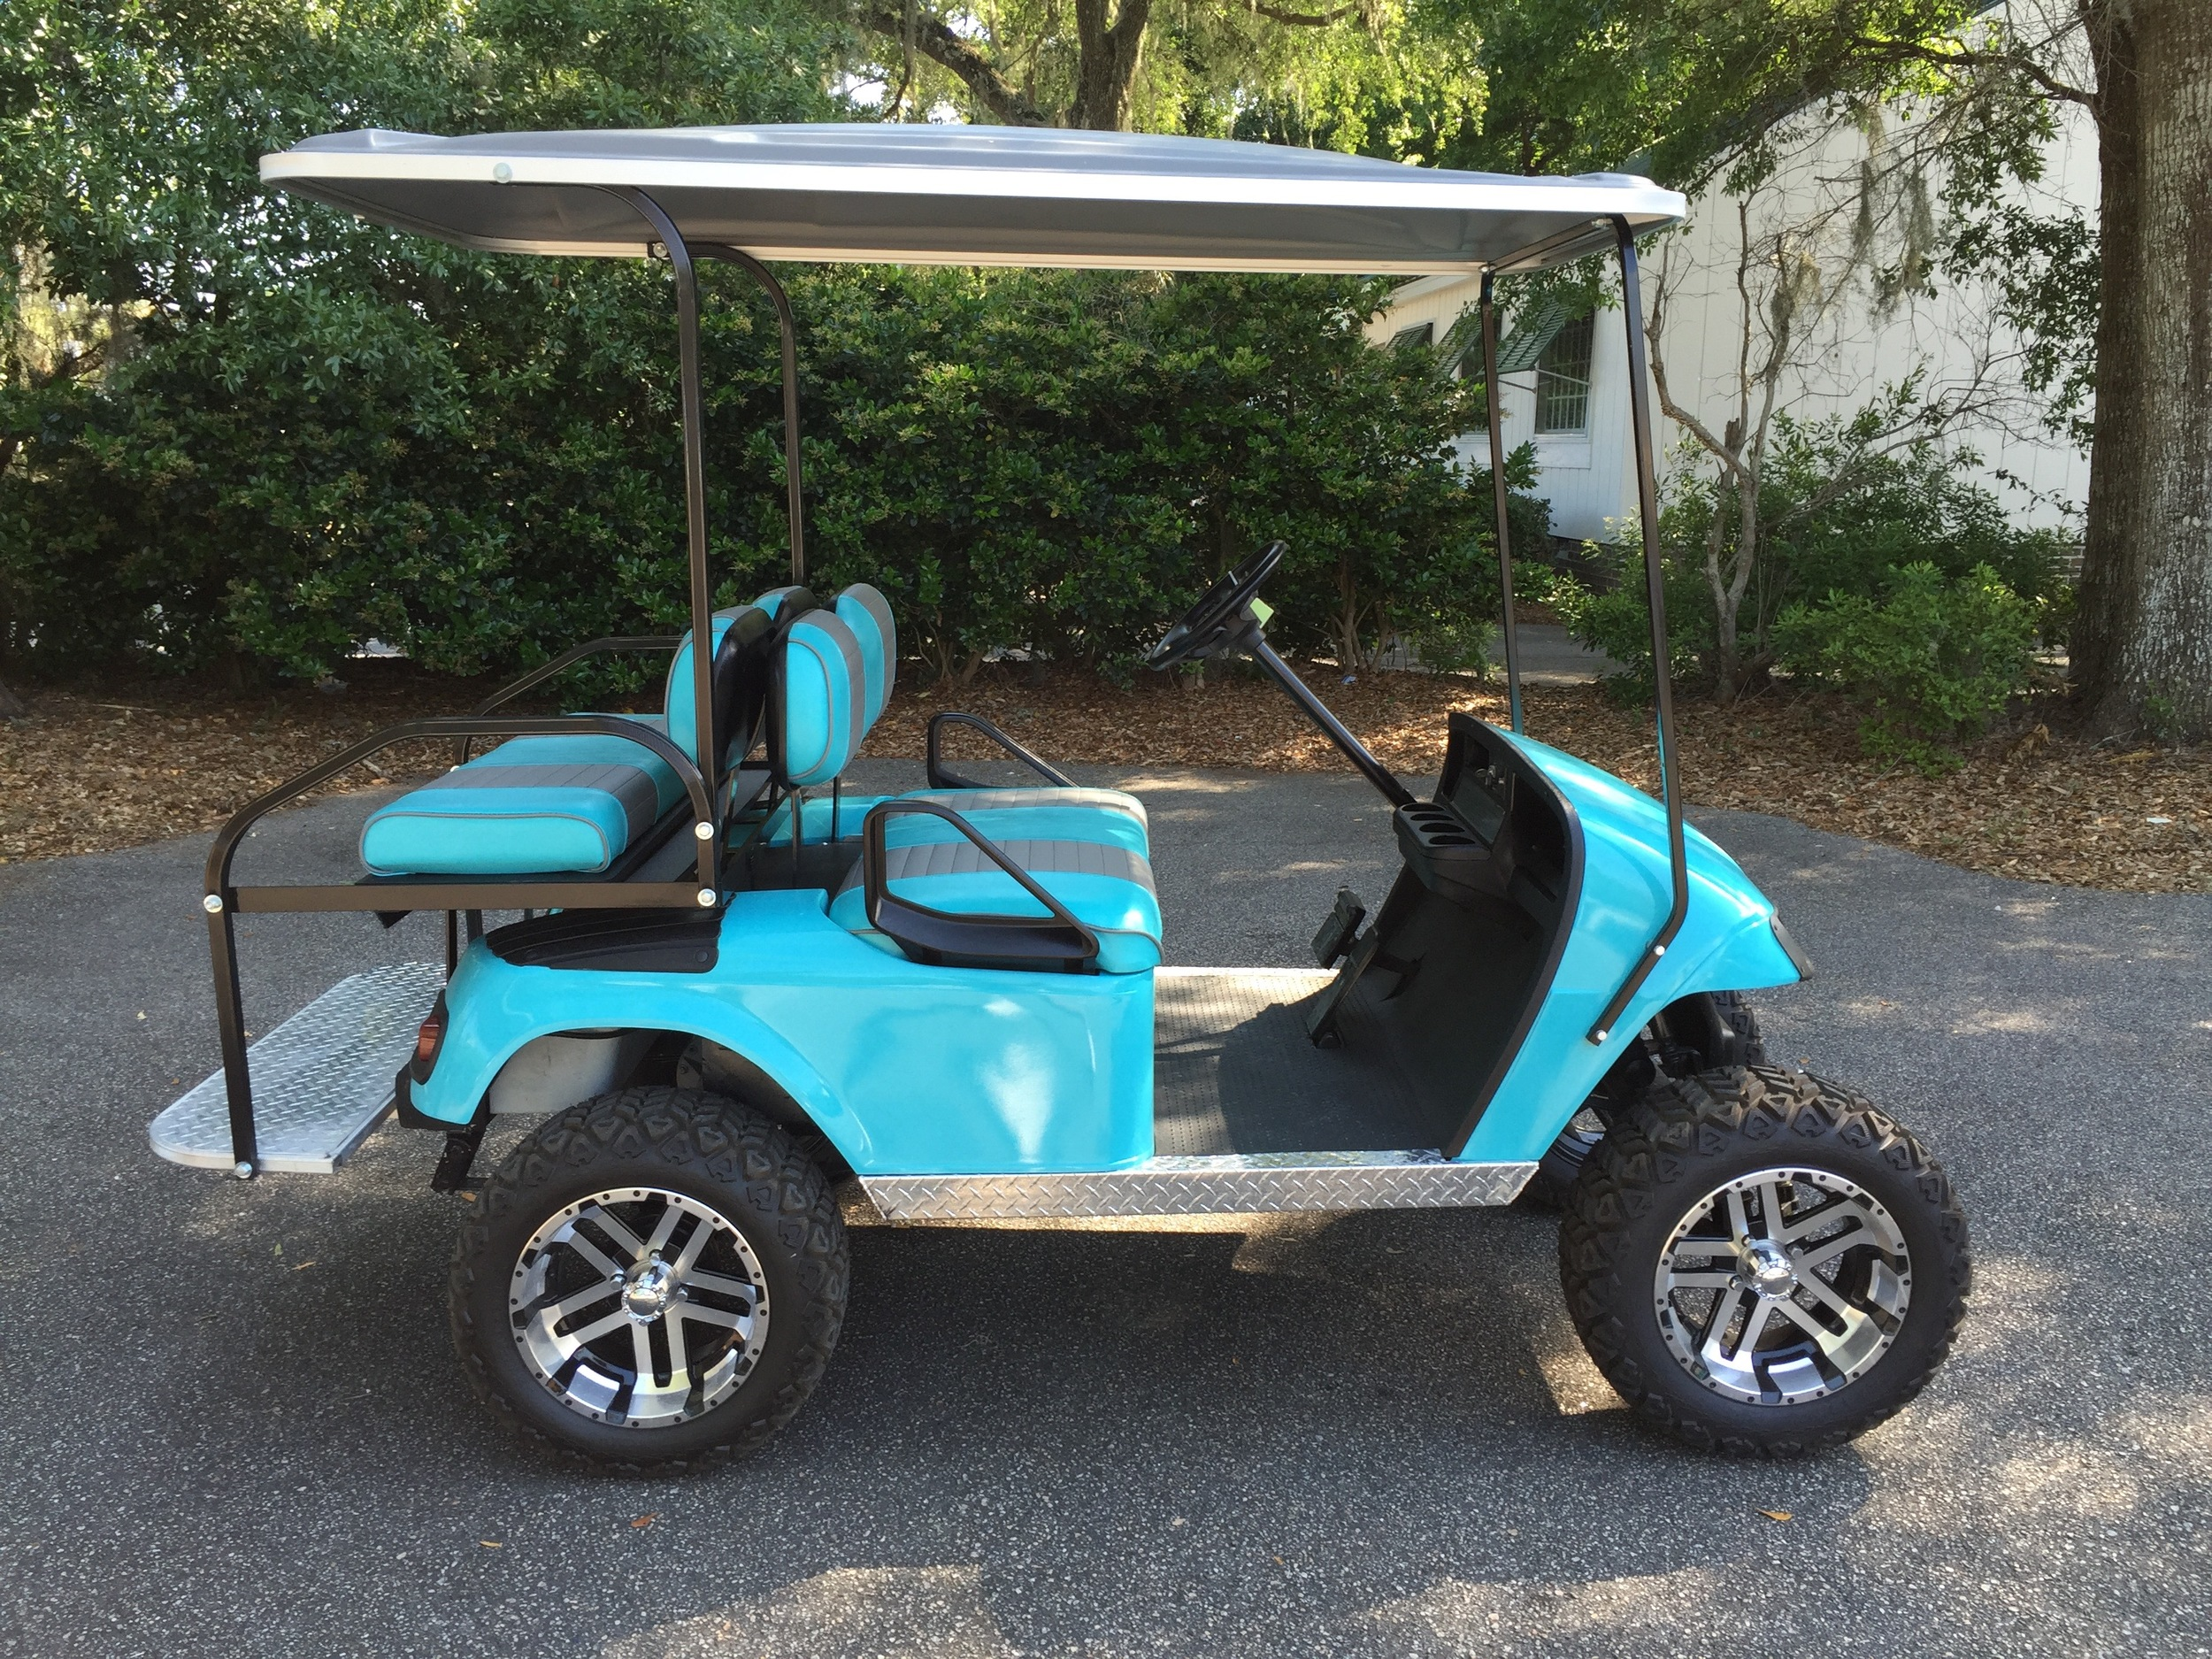 Aqua EZGO Lifted Cart  Aqua/smoke seats, gray extended top, new batteries, LED lights, Backlash (23x10x14) tires, high speed code, mirror, flip windshield and state of charge meter